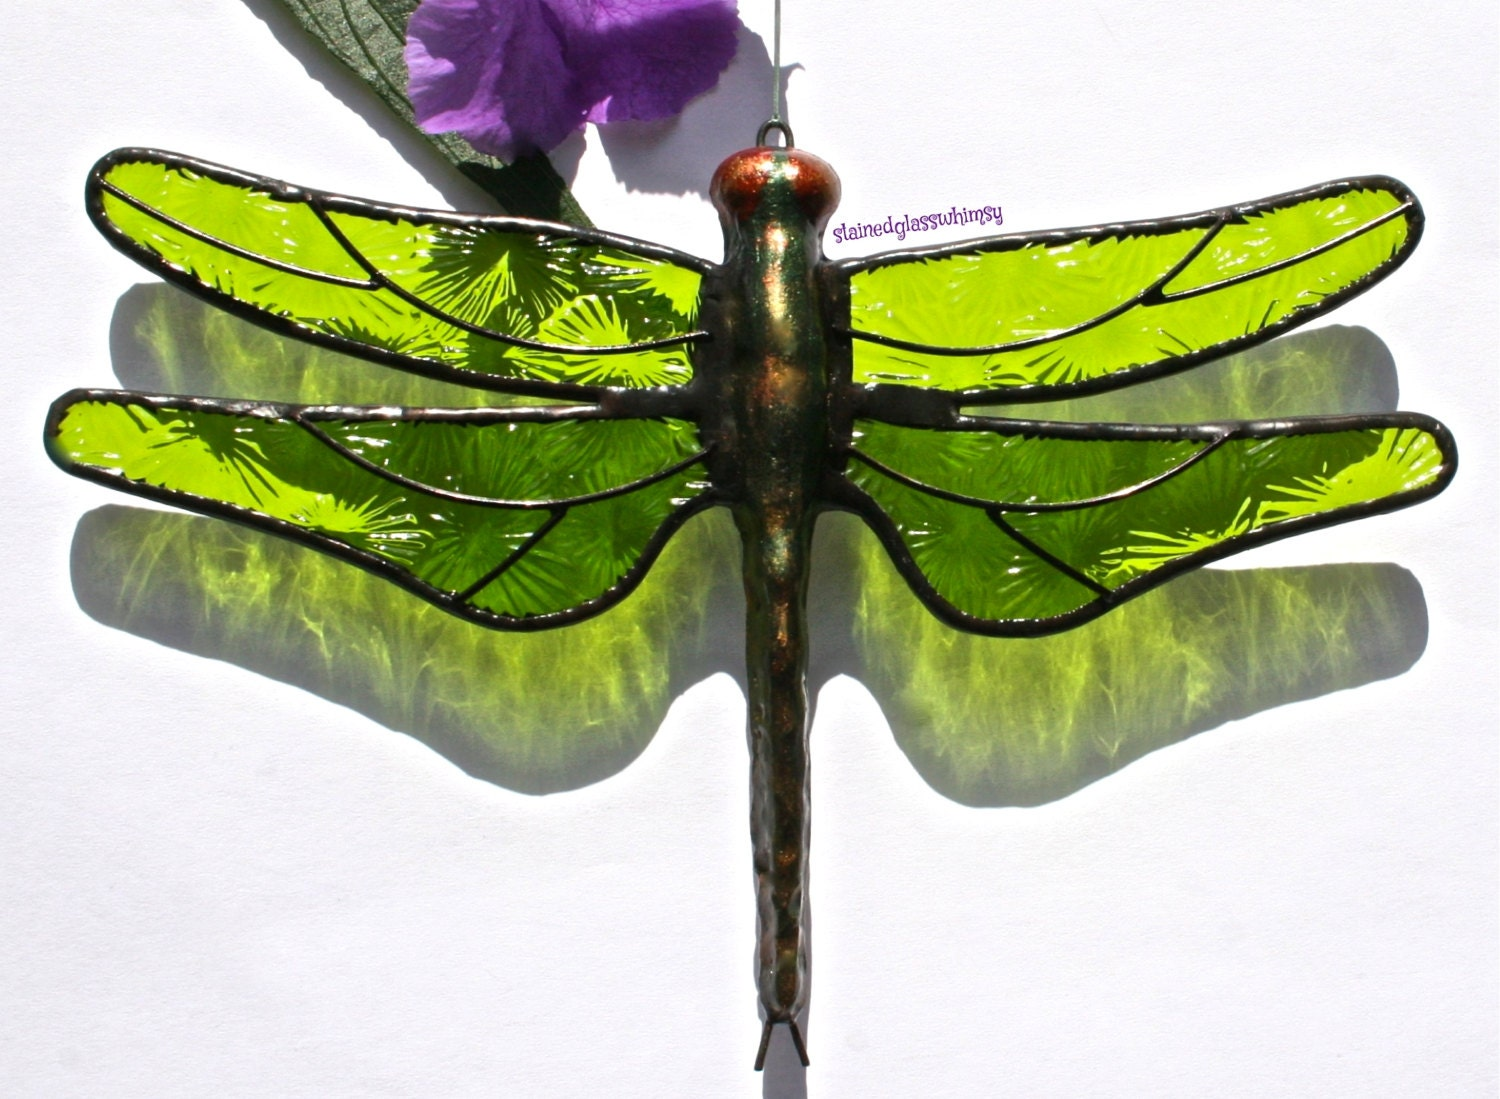 Stained Glass DRAGONFLY Suncatcher,  Spring / Lime Green Wings, Textured, Handcast Metal Body, USA Handmade - stainedglasswhimsy